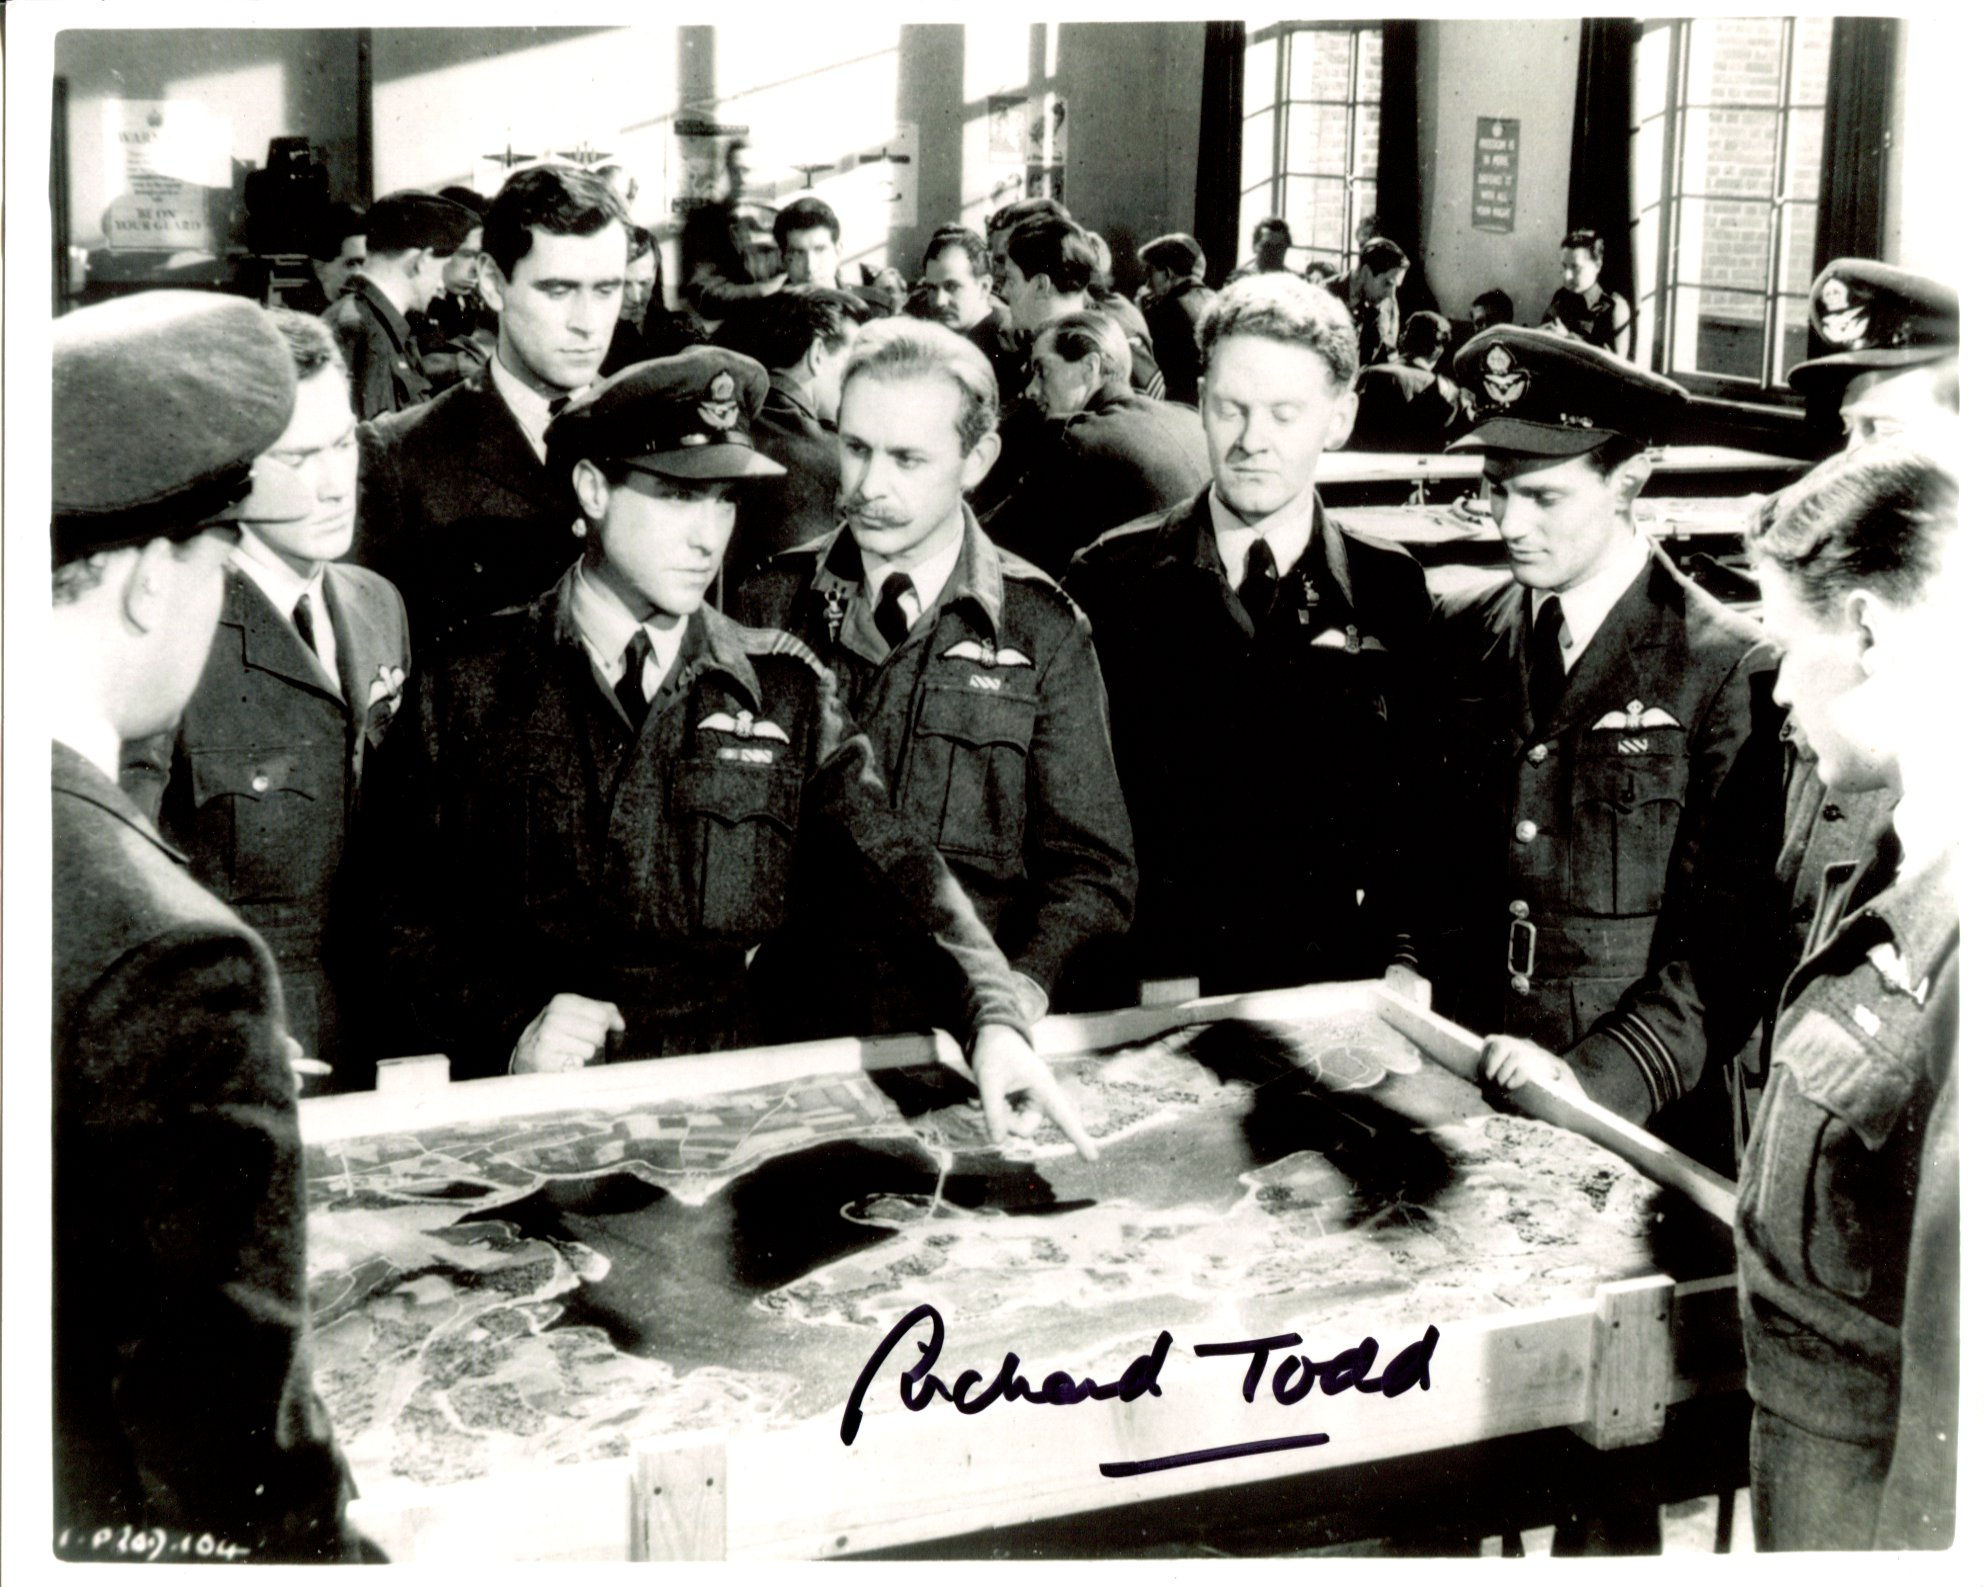 The Dambusters. Wonderful 8x10 photo from the war movie 'The Dambusters' signed by the late